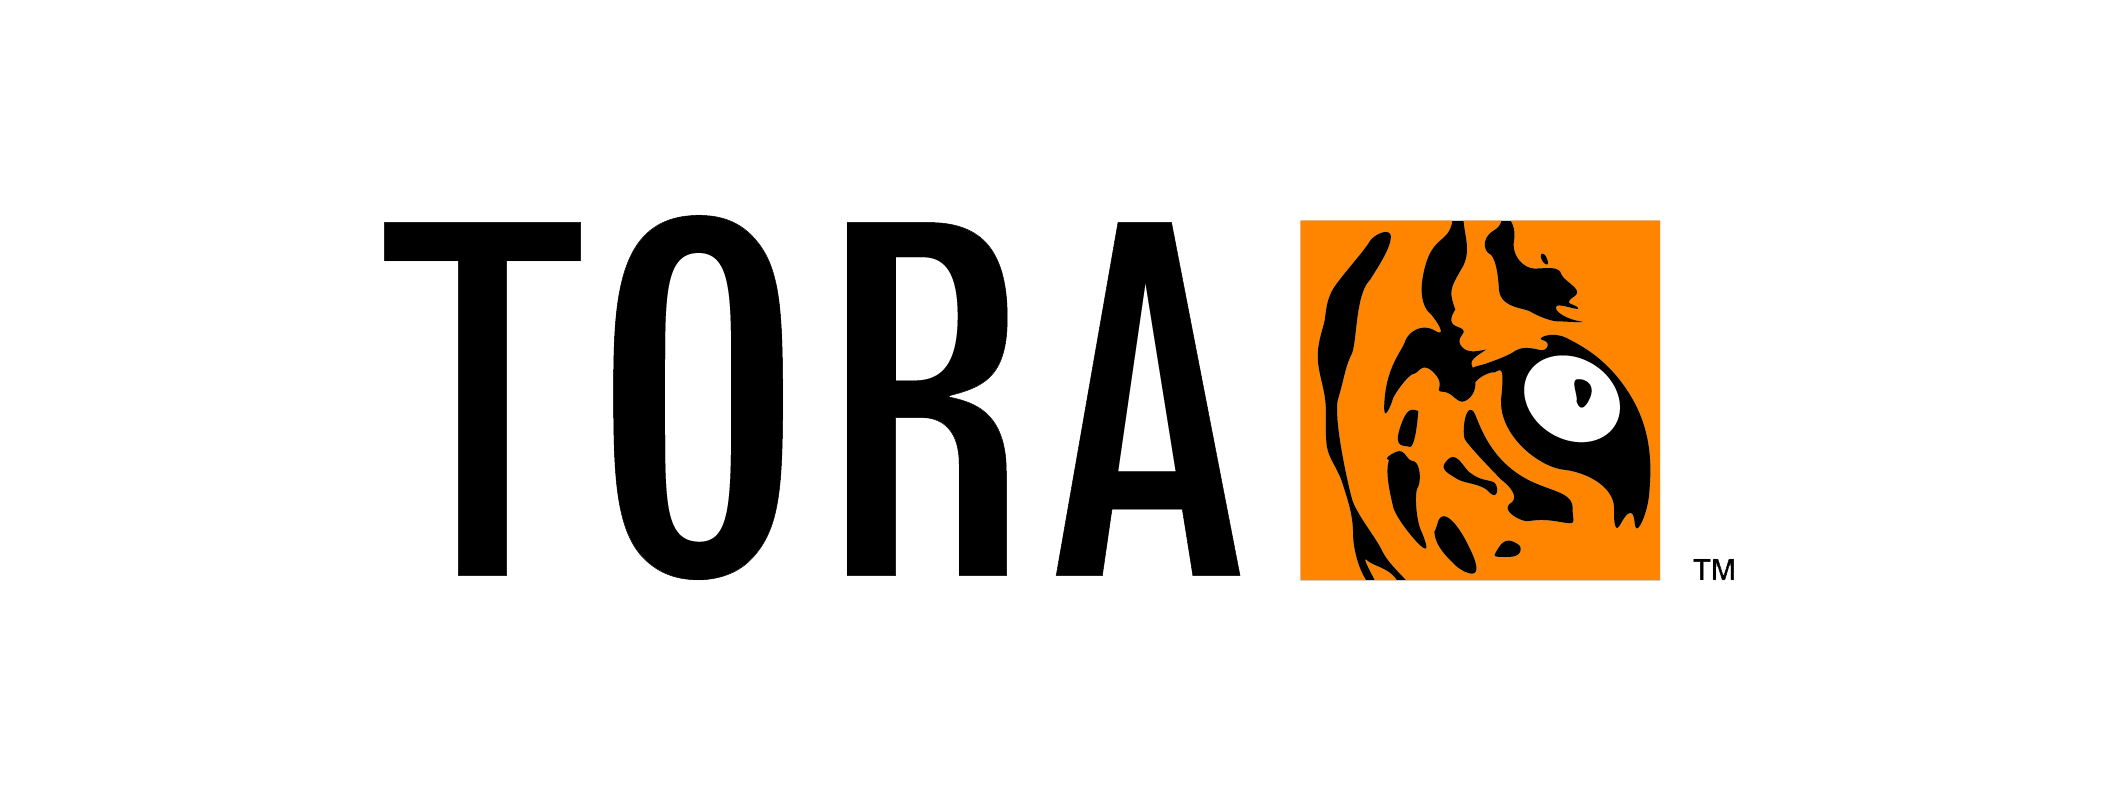 TORA Strengthens Its Fixed Income Offering with Neptune Integration